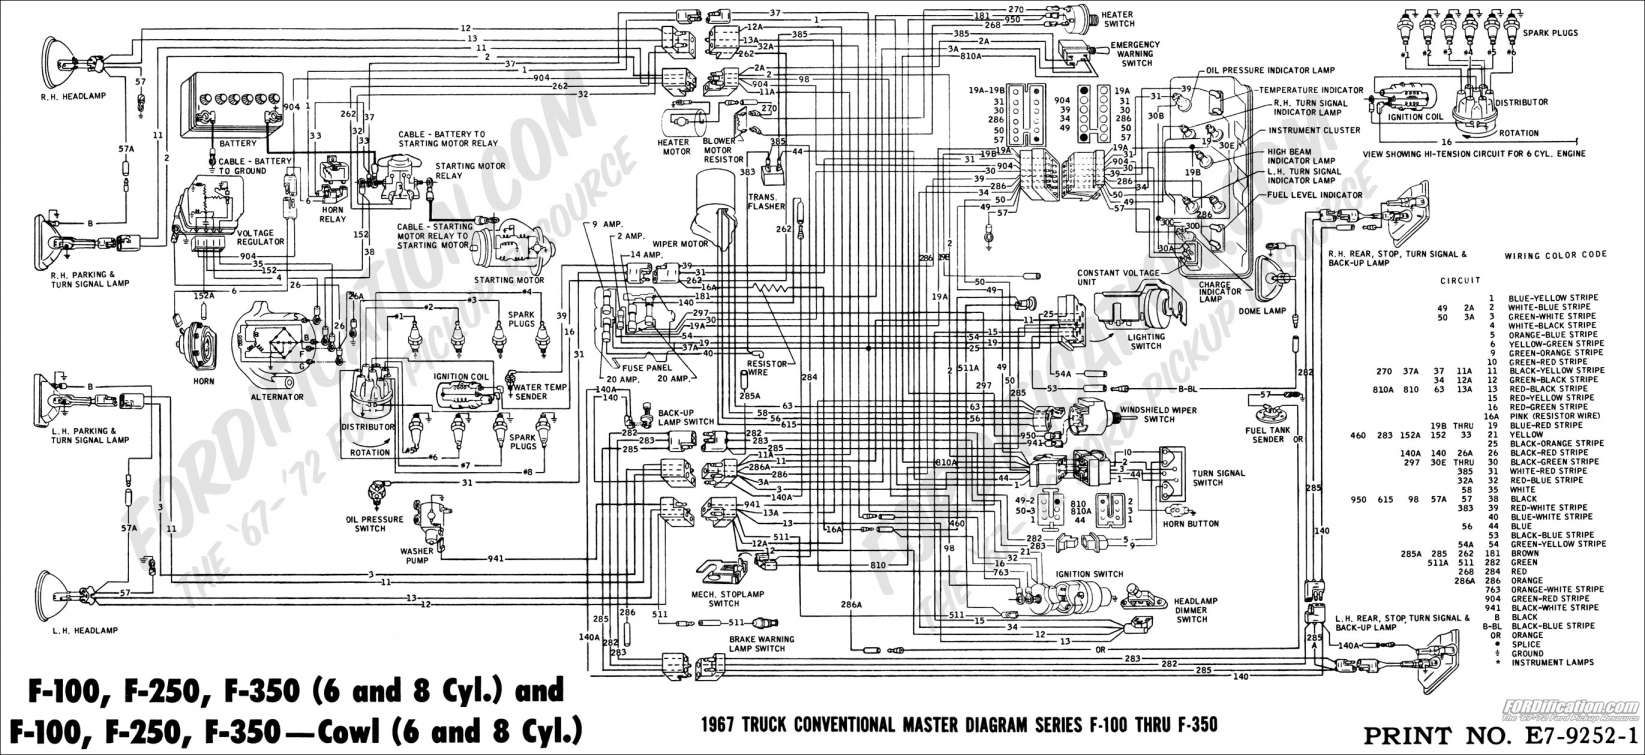 1974 Ford F 150 Wiring Diagram